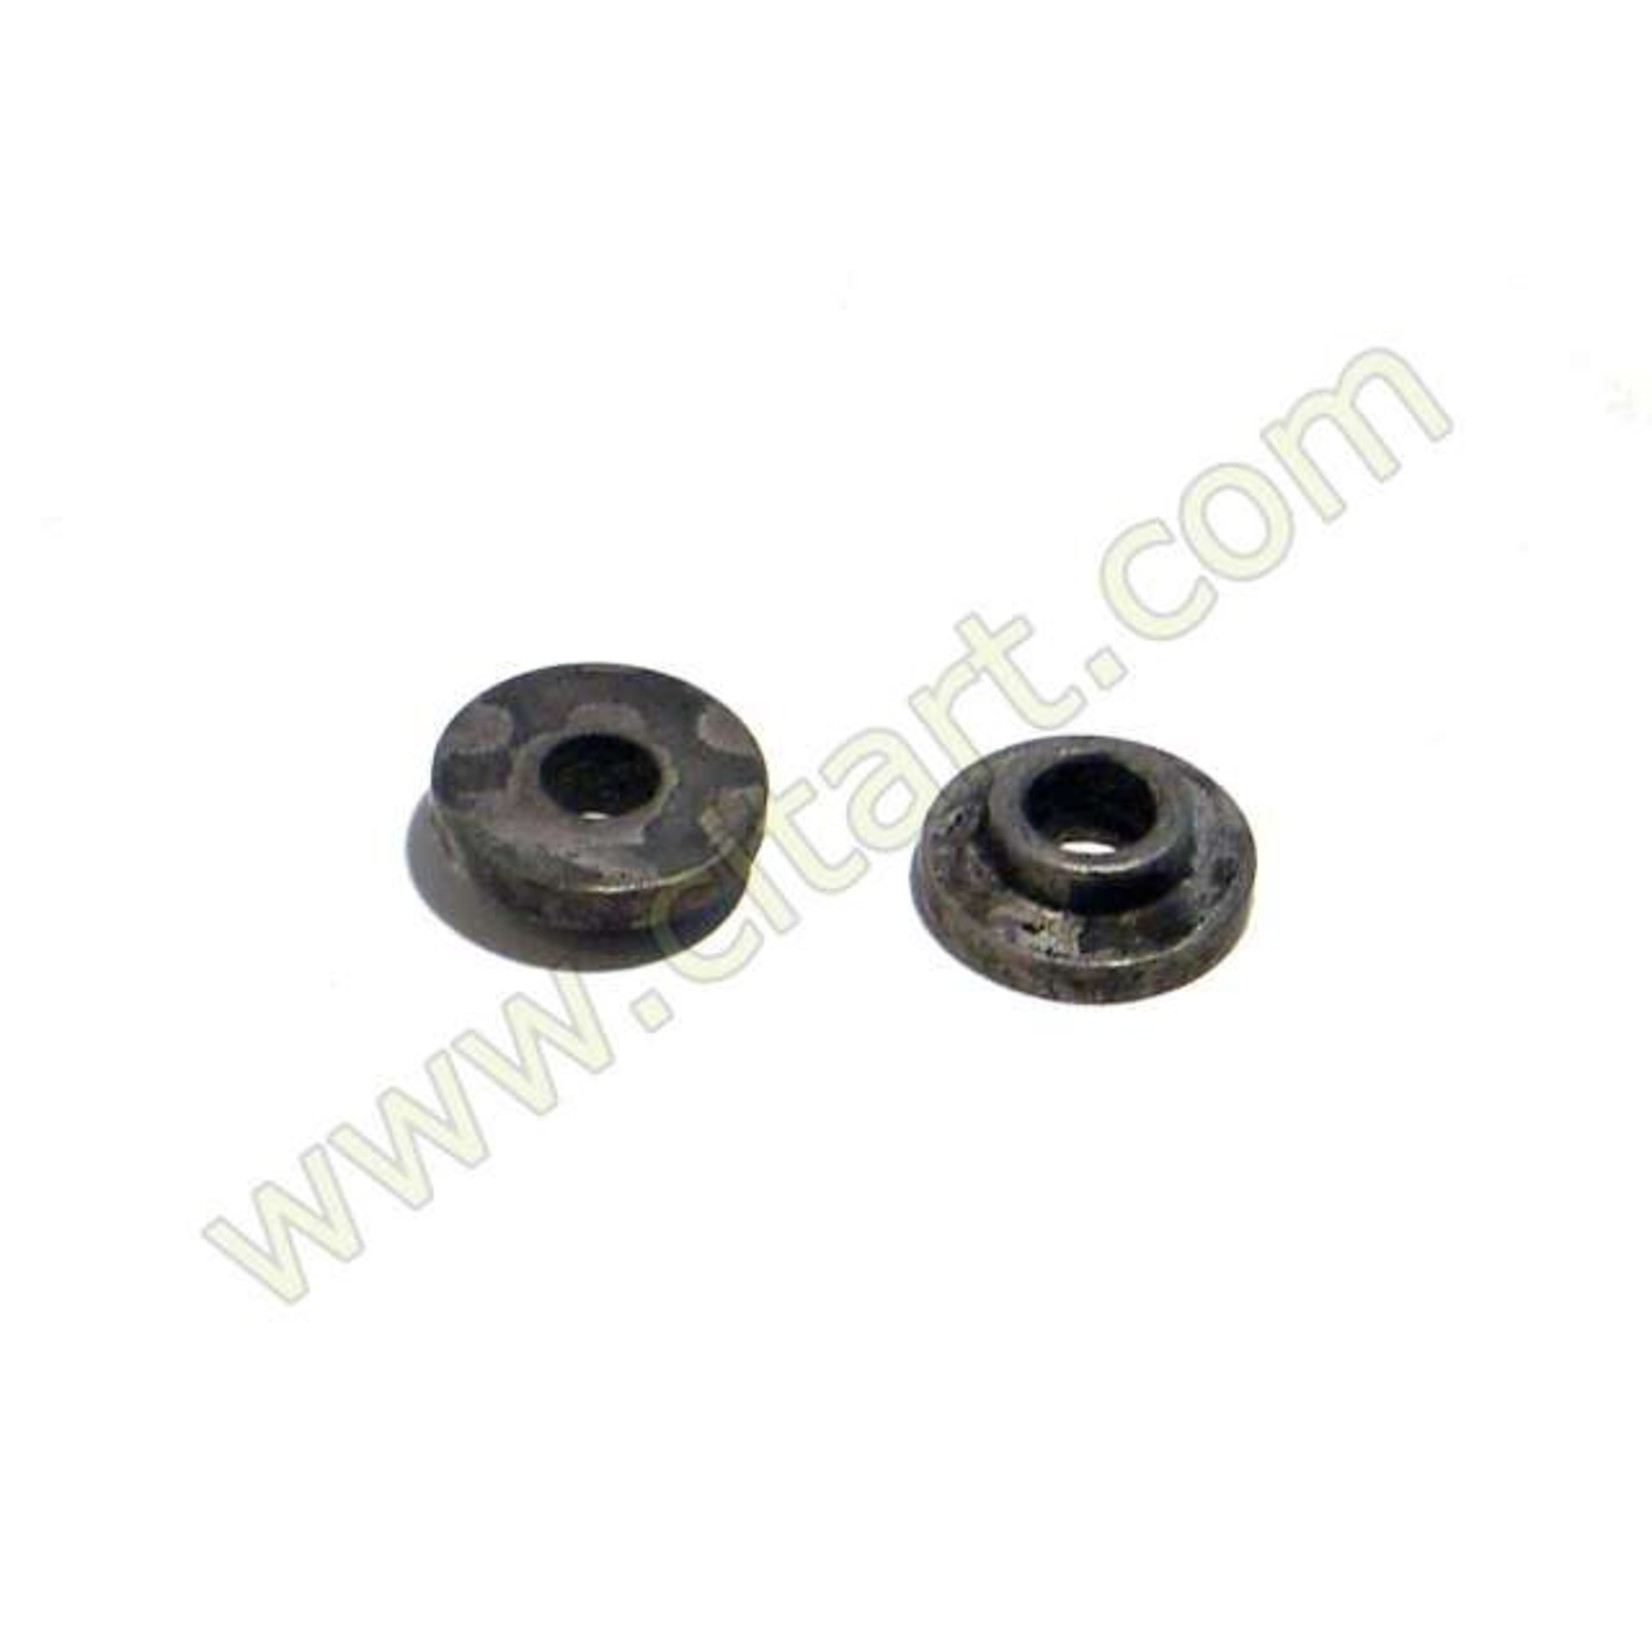 Bush for lever clutch for all types Nr Org: 5438345